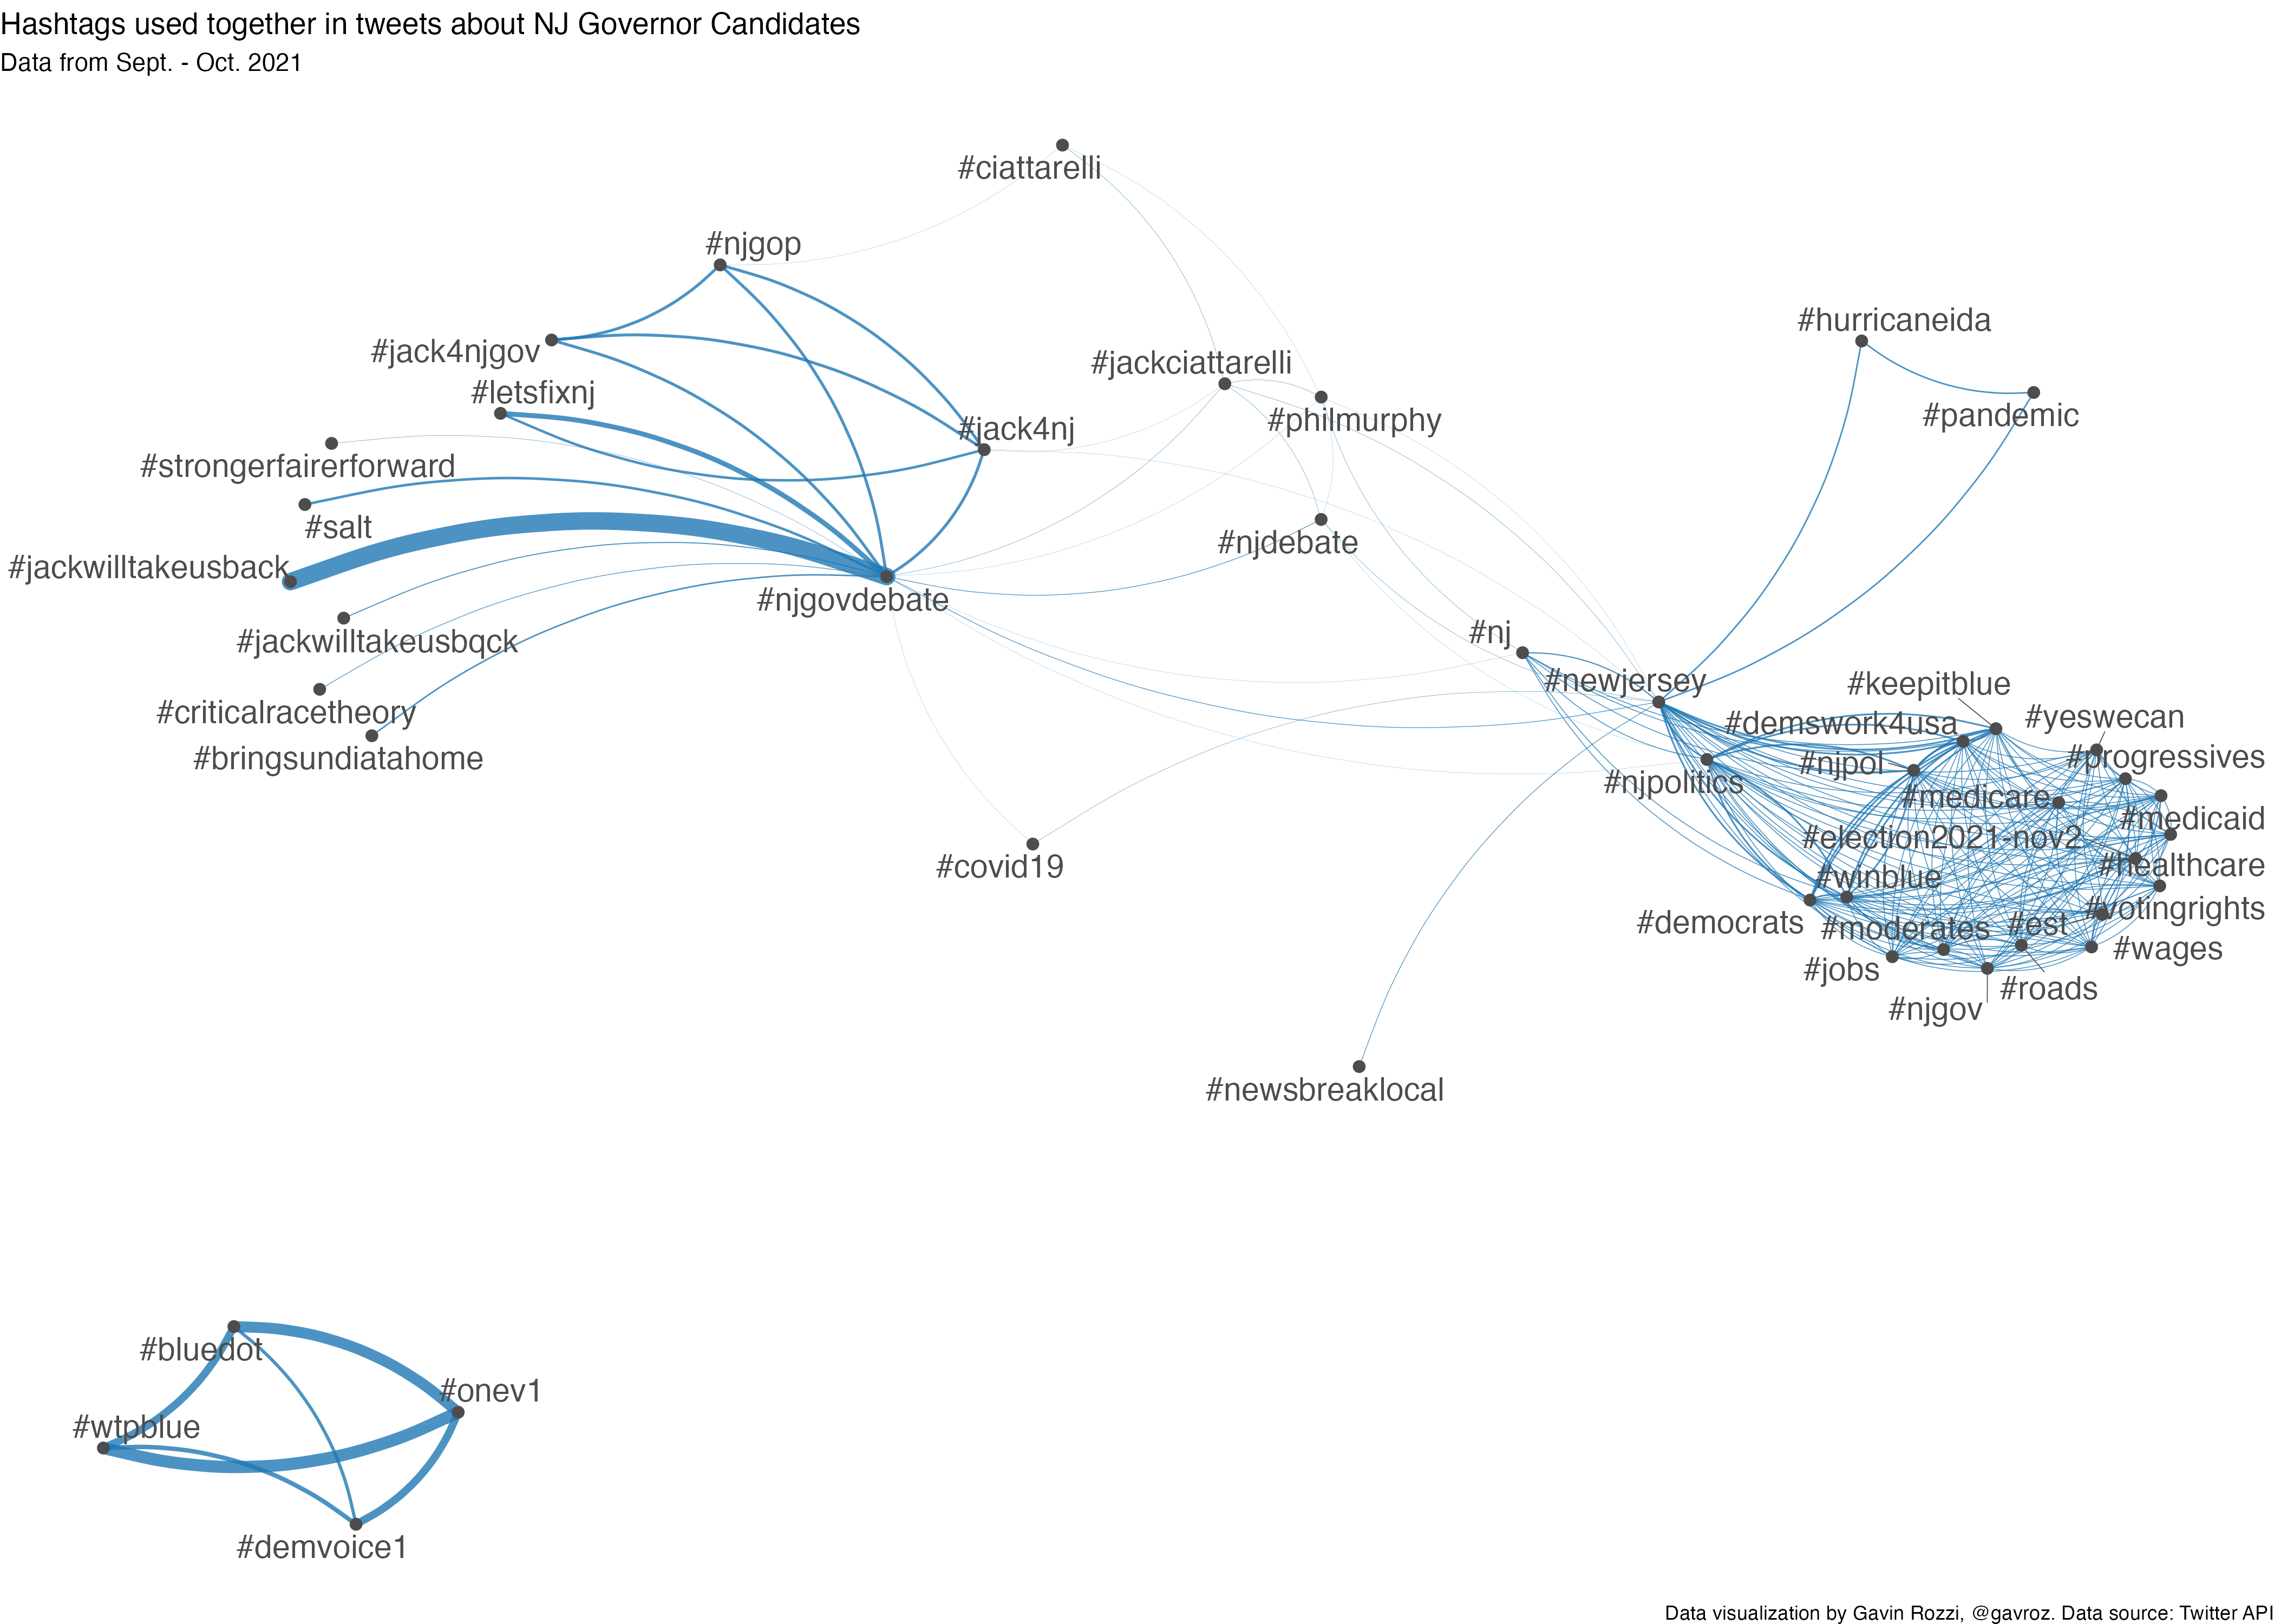 Figure 3: Network diagram of hashtags used together in tweets about Phil Murphy and Jack Ciattarelli